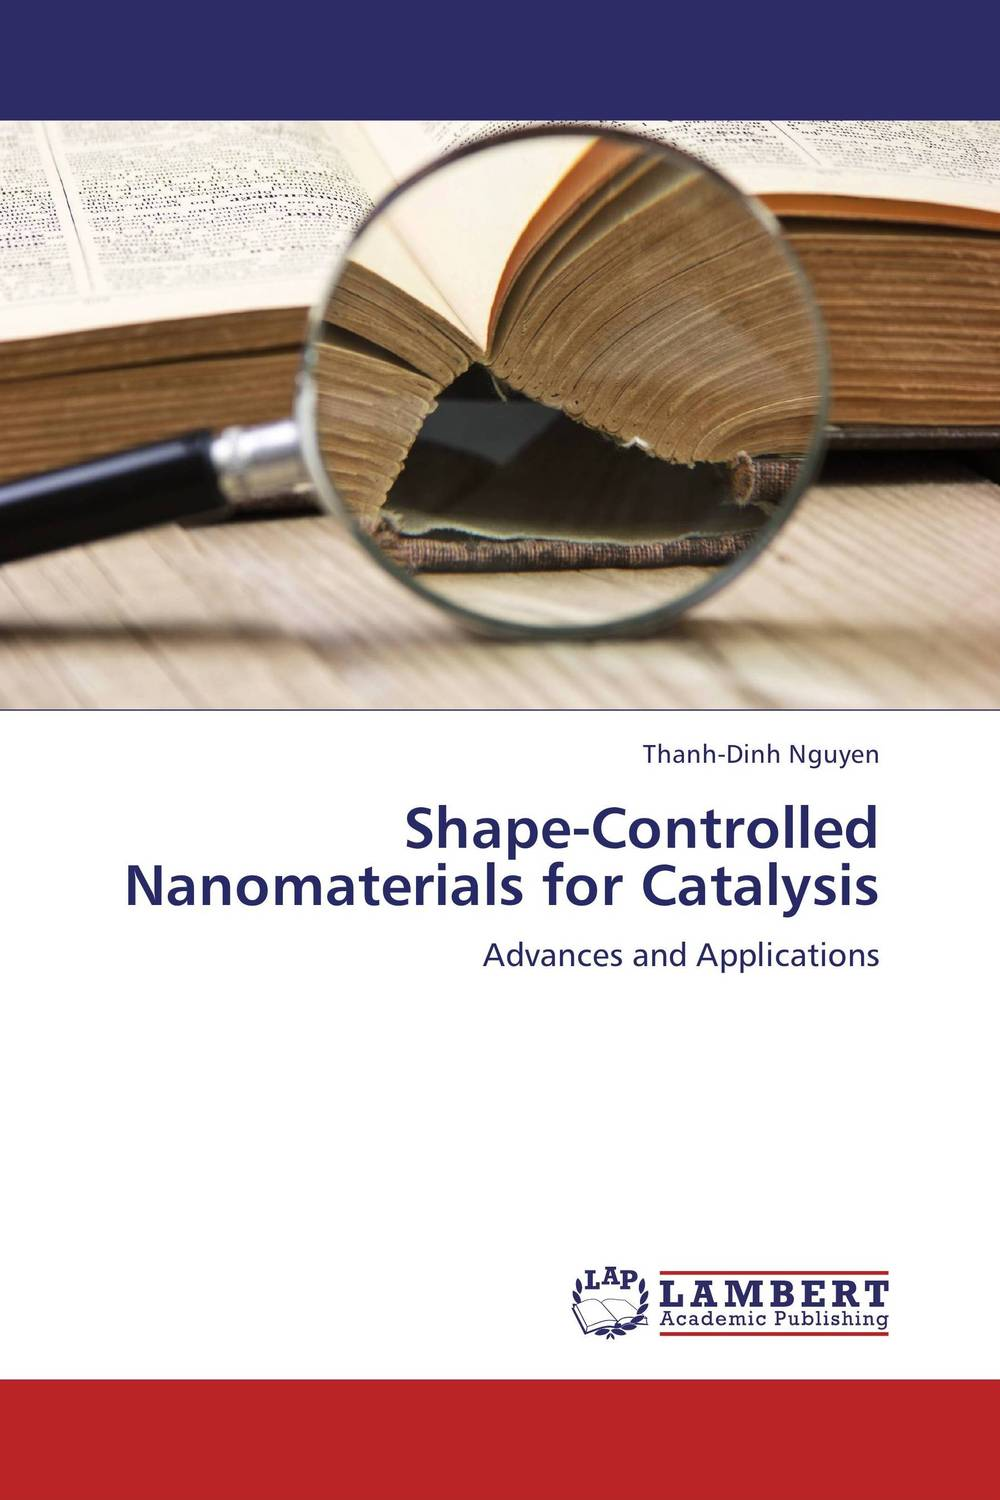 Shape-Controlled Nanomaterials for Catalysis maytoni arm562 01 w